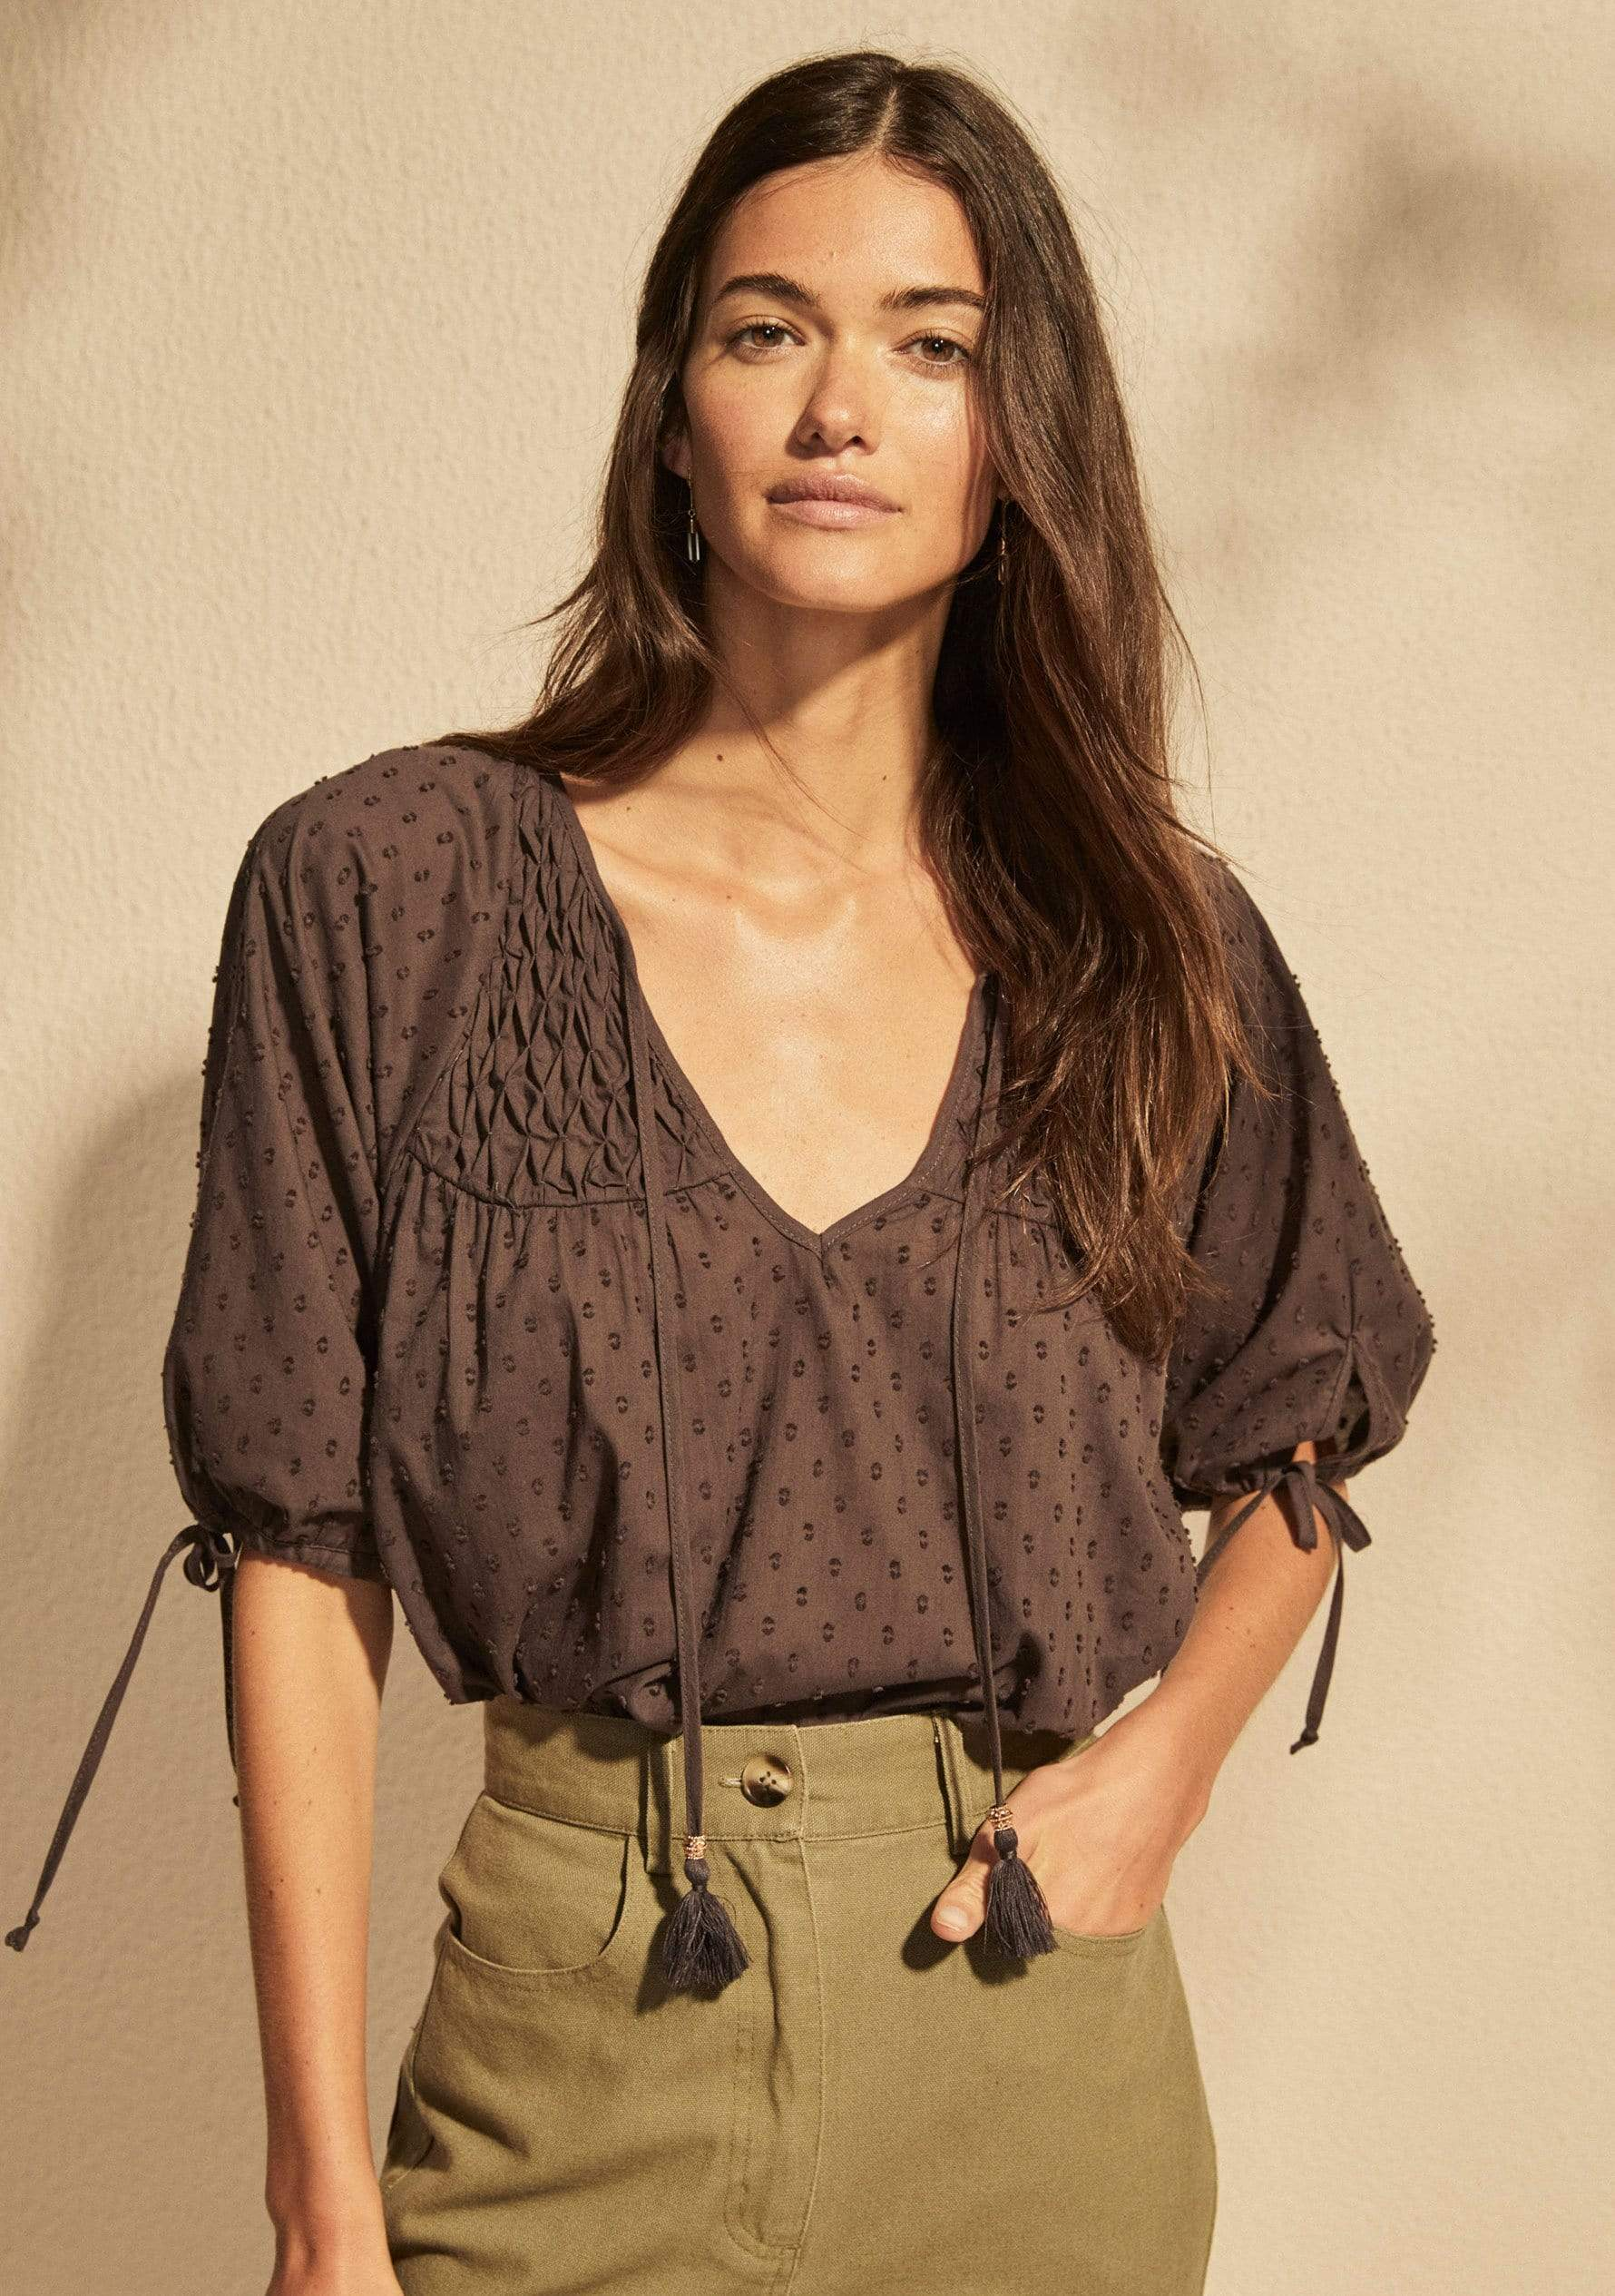 Scott Blouse Charcoal AUD$119 @ Auguste